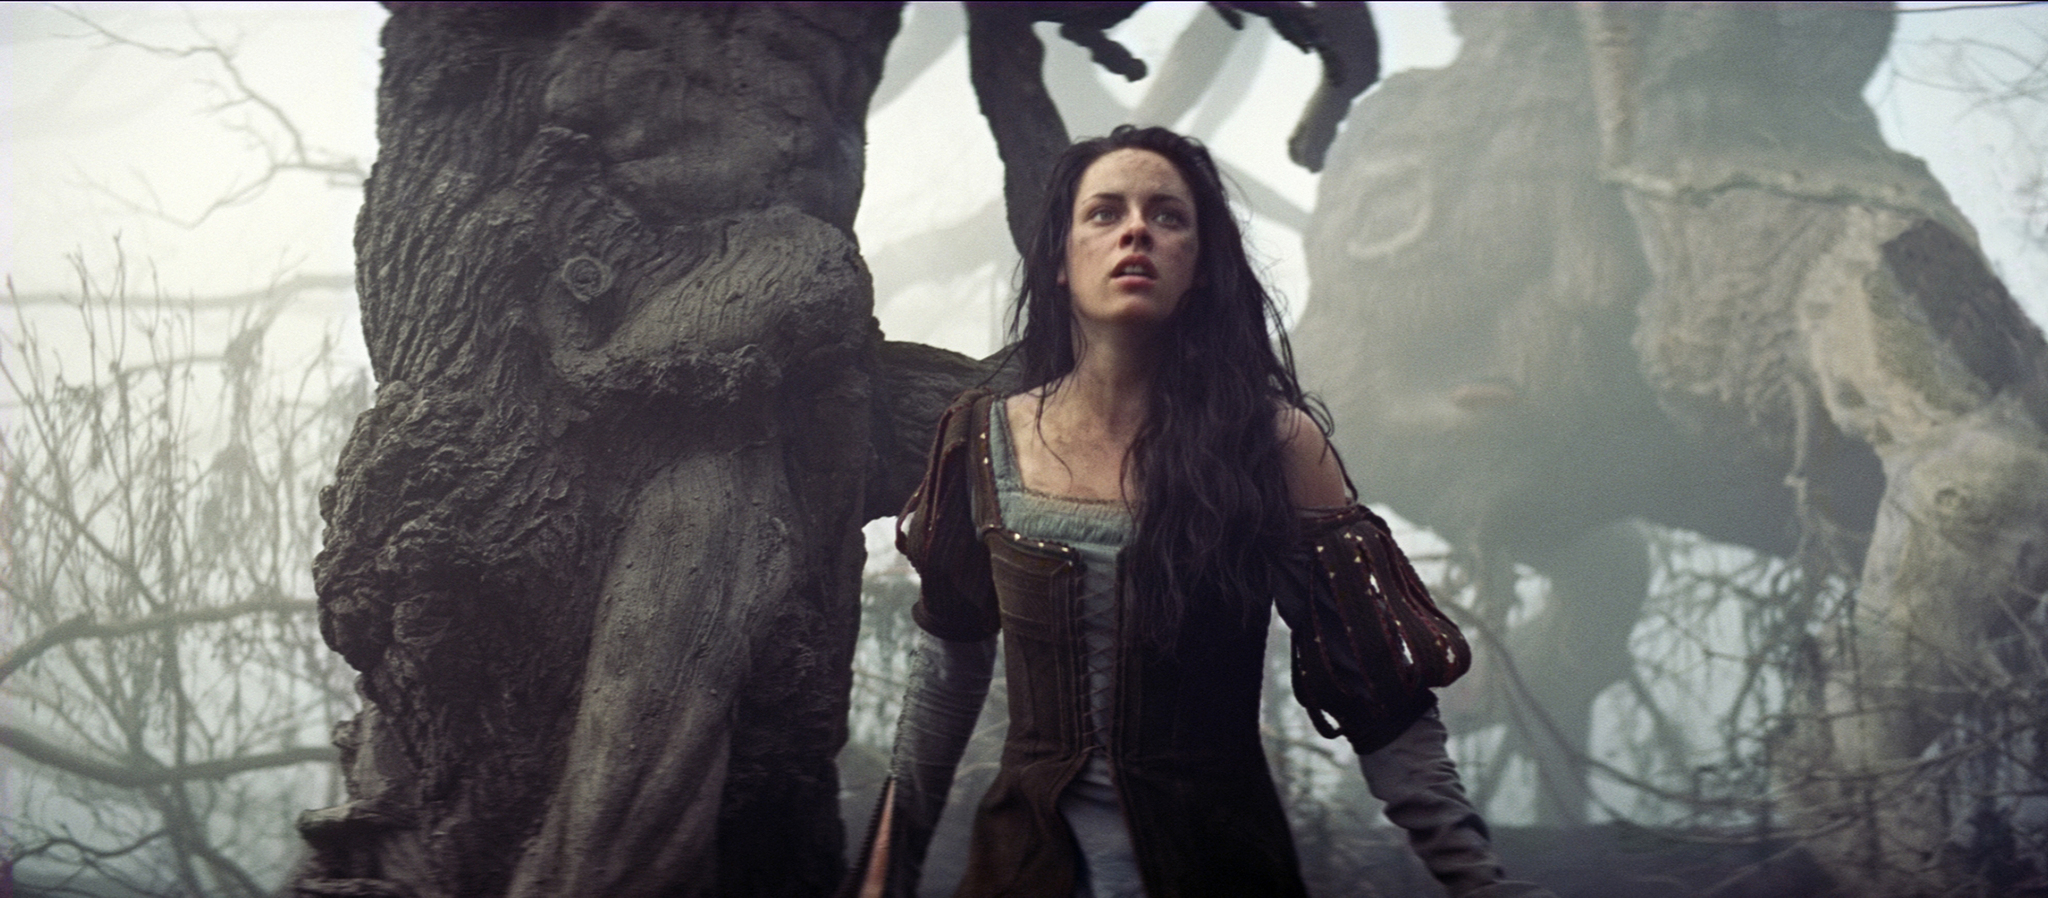 snow white and the huntsman Definitely not your average retelling of the classic snow white fairy tale, snow white and the huntsman is a dark, action-fantasy film that's based more on the.